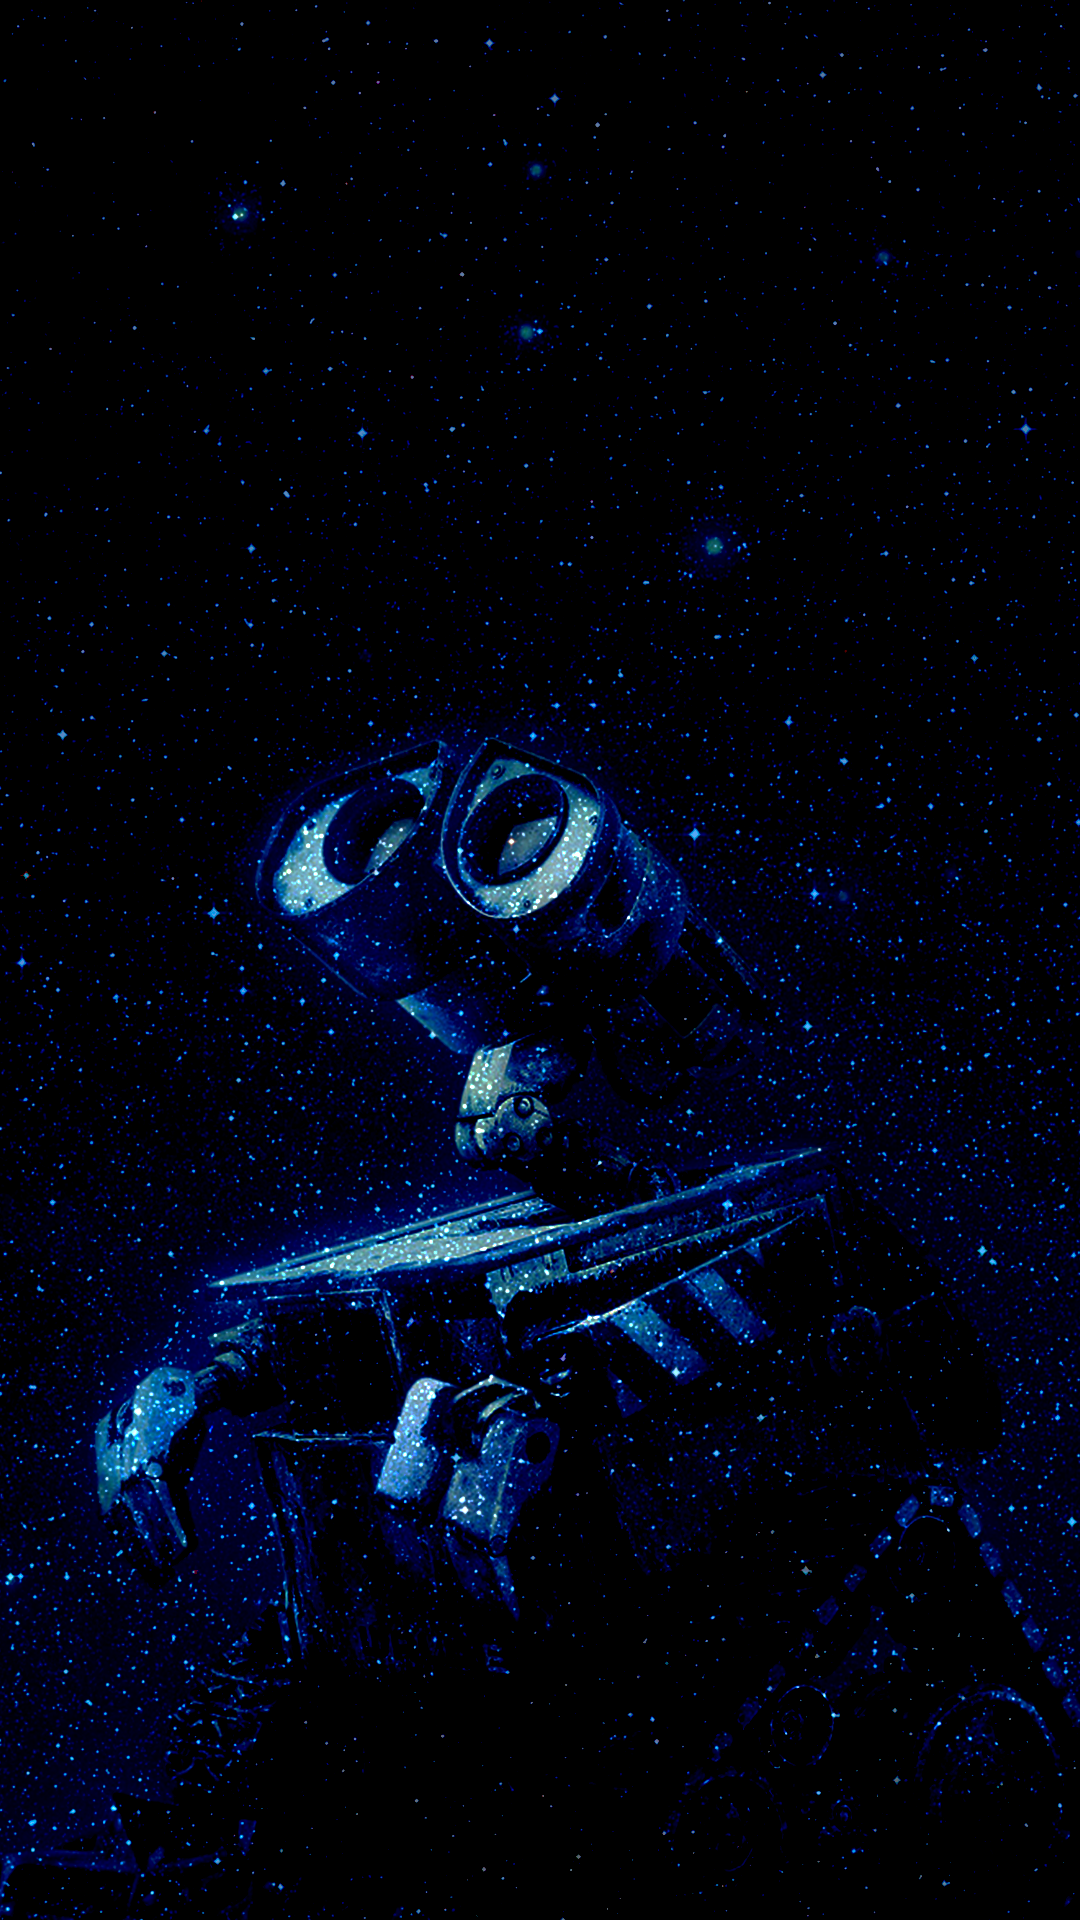 Wall E Space 1080 X 1920 FHD Wallpaper